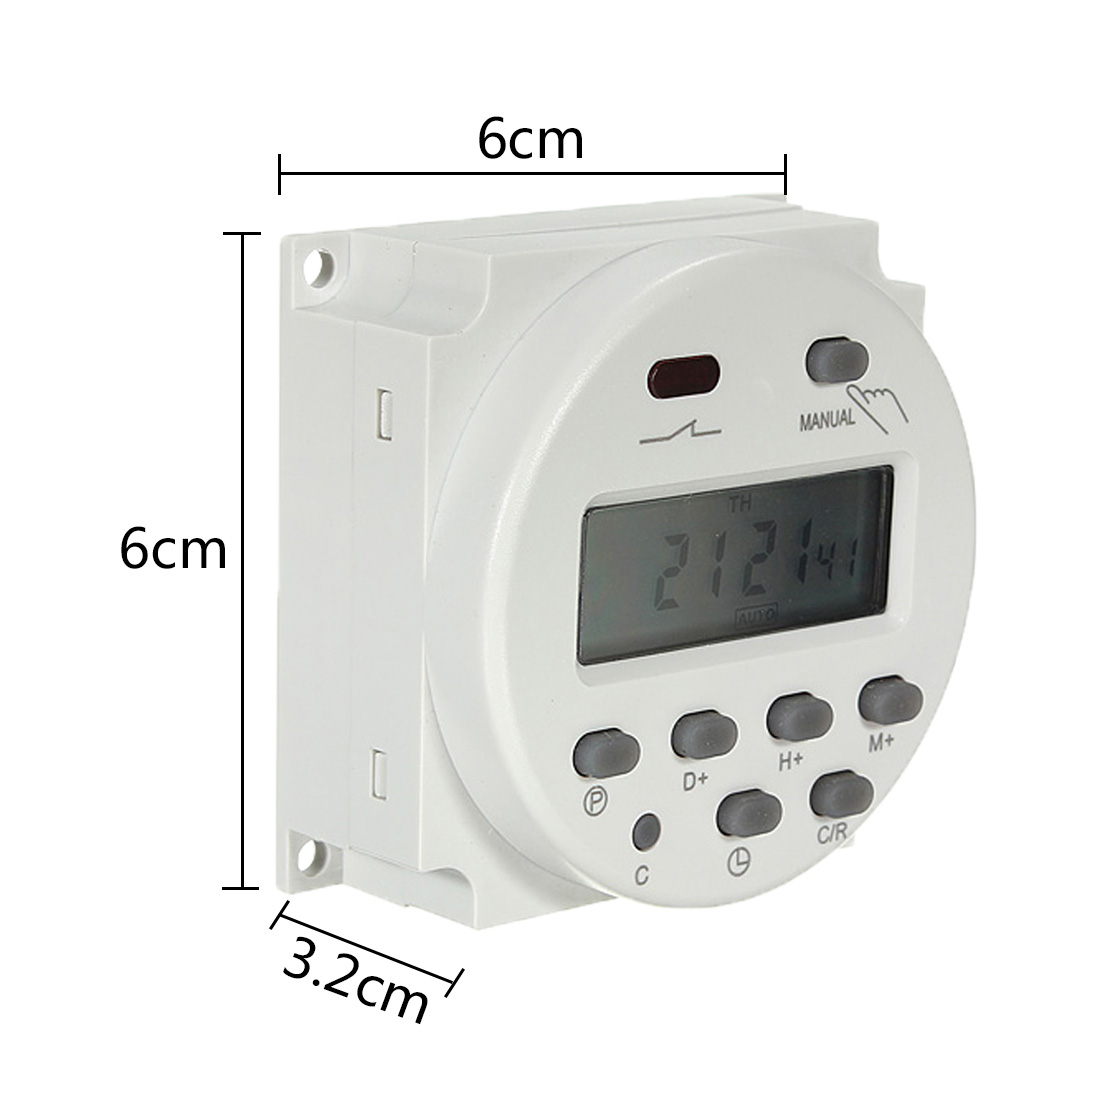 168 hours Digital Timer Switch Electronic Intelligent Programmable Timer Time Relay Switch Control for Light Boxes Radio 220V [zob] hagrid eh771 timer switch 1 channel cycle timer switch control switch import import